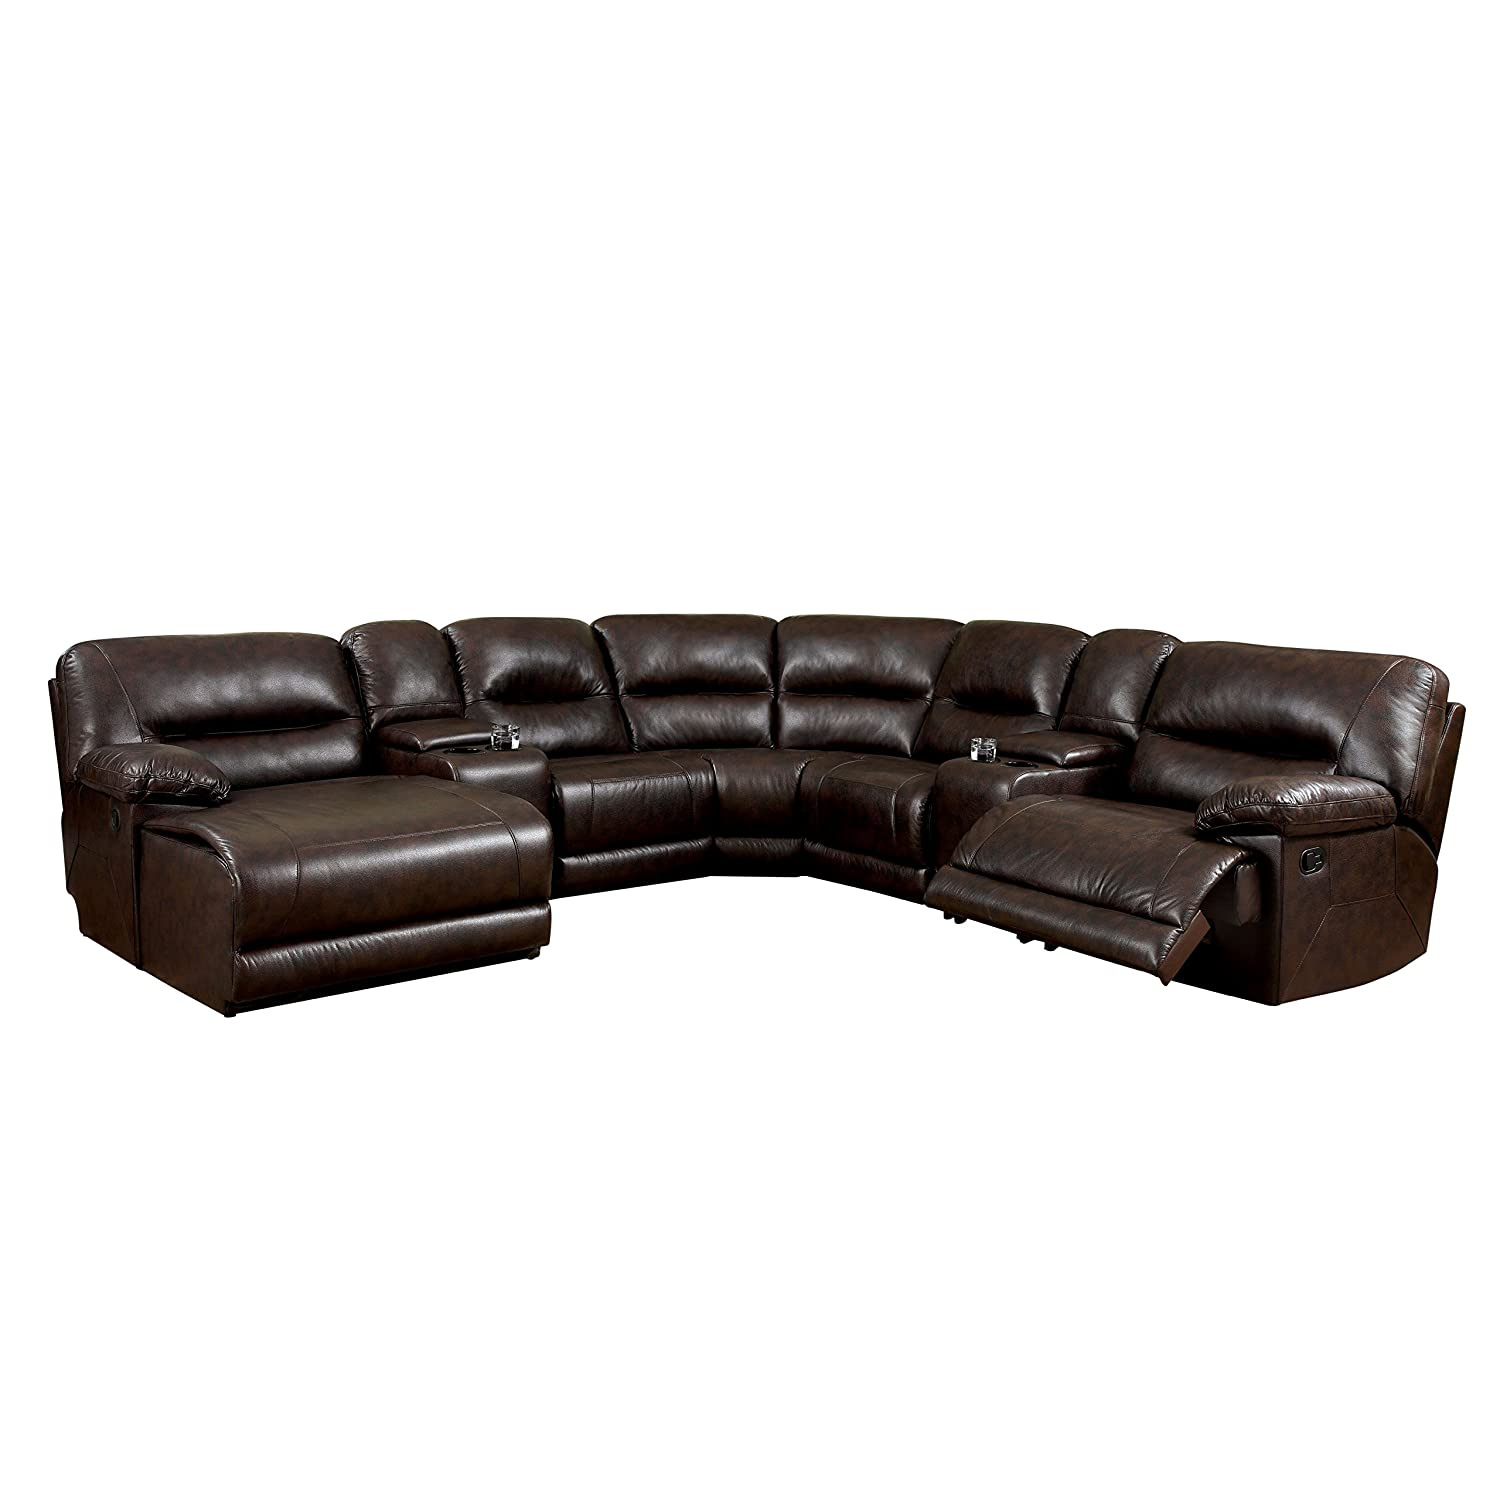 Furniture of America Griffith Corner Sectional Sofa